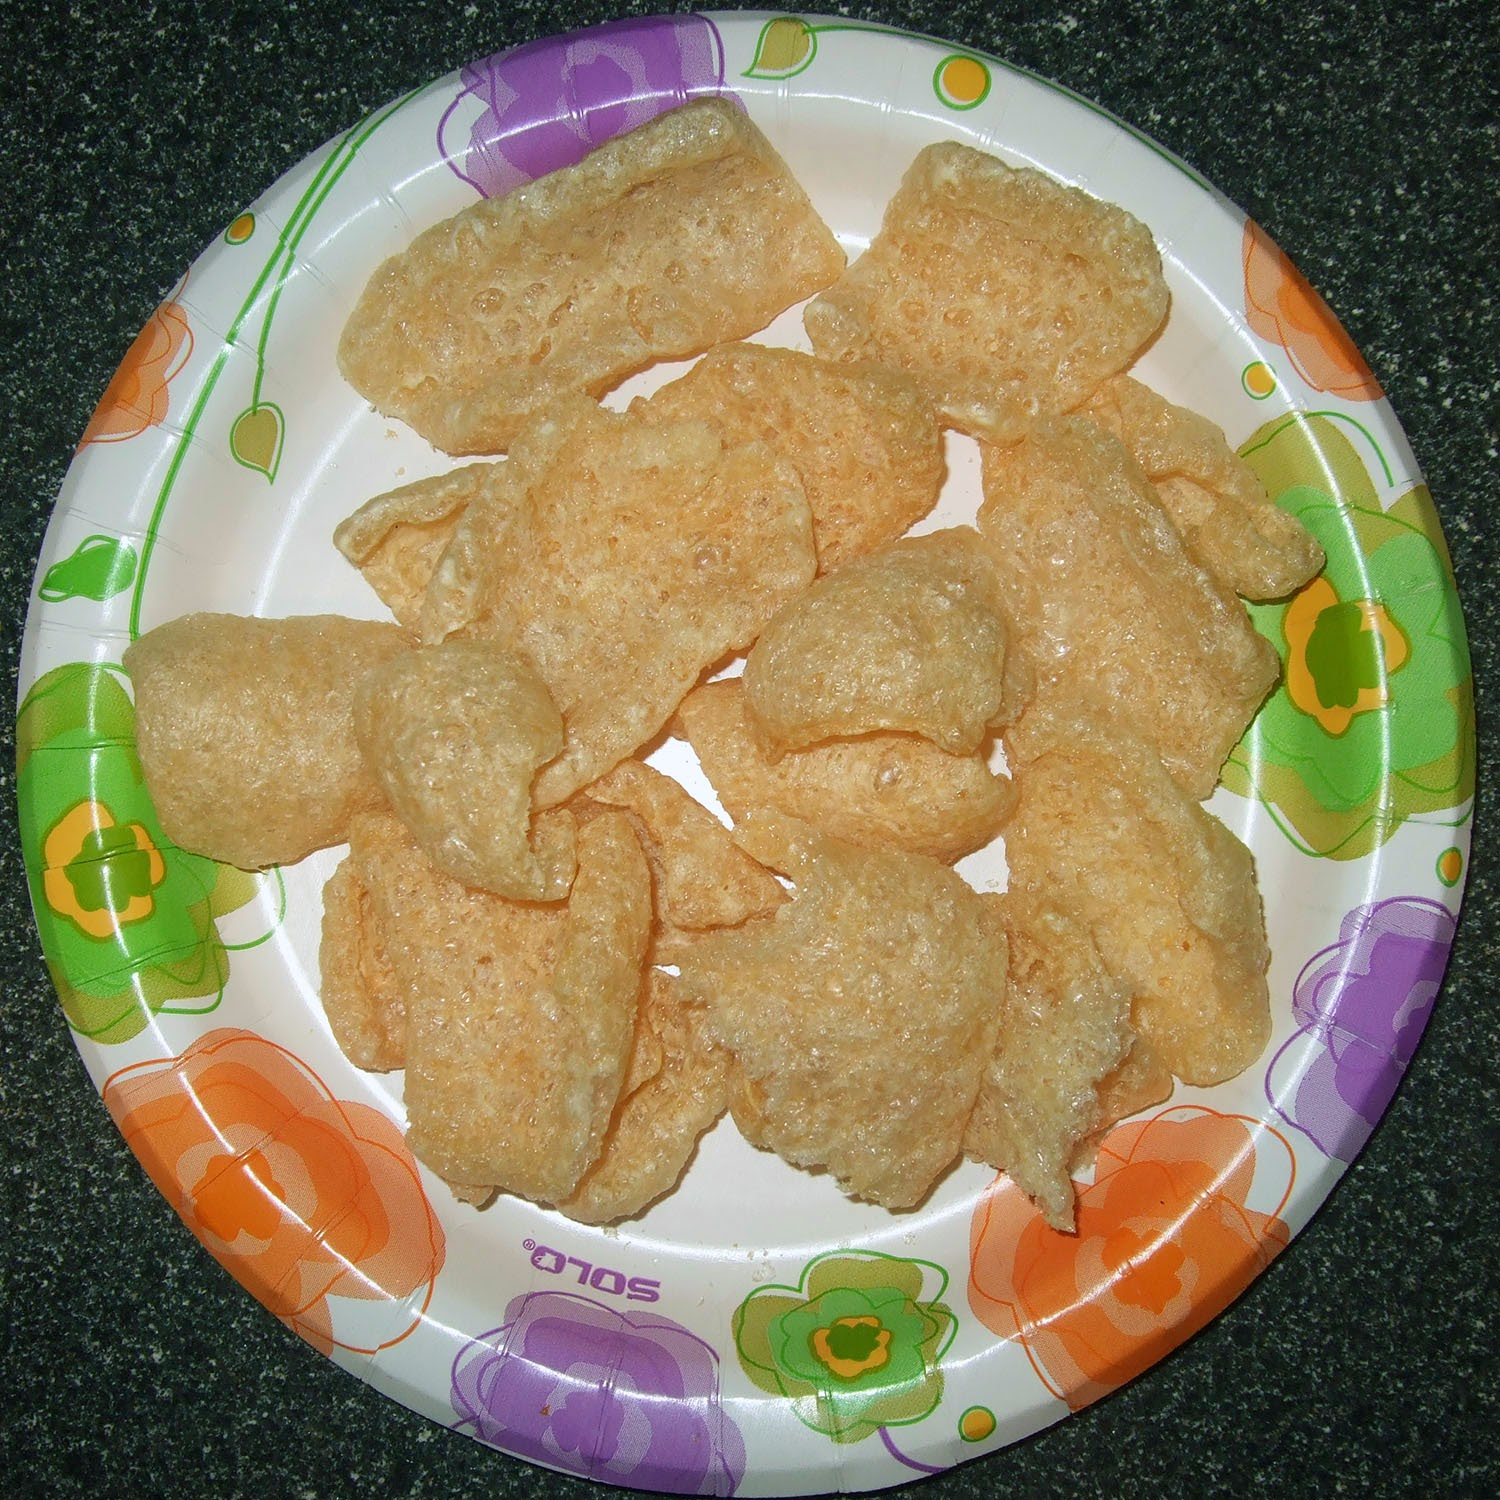 Pork rinds on a plate.